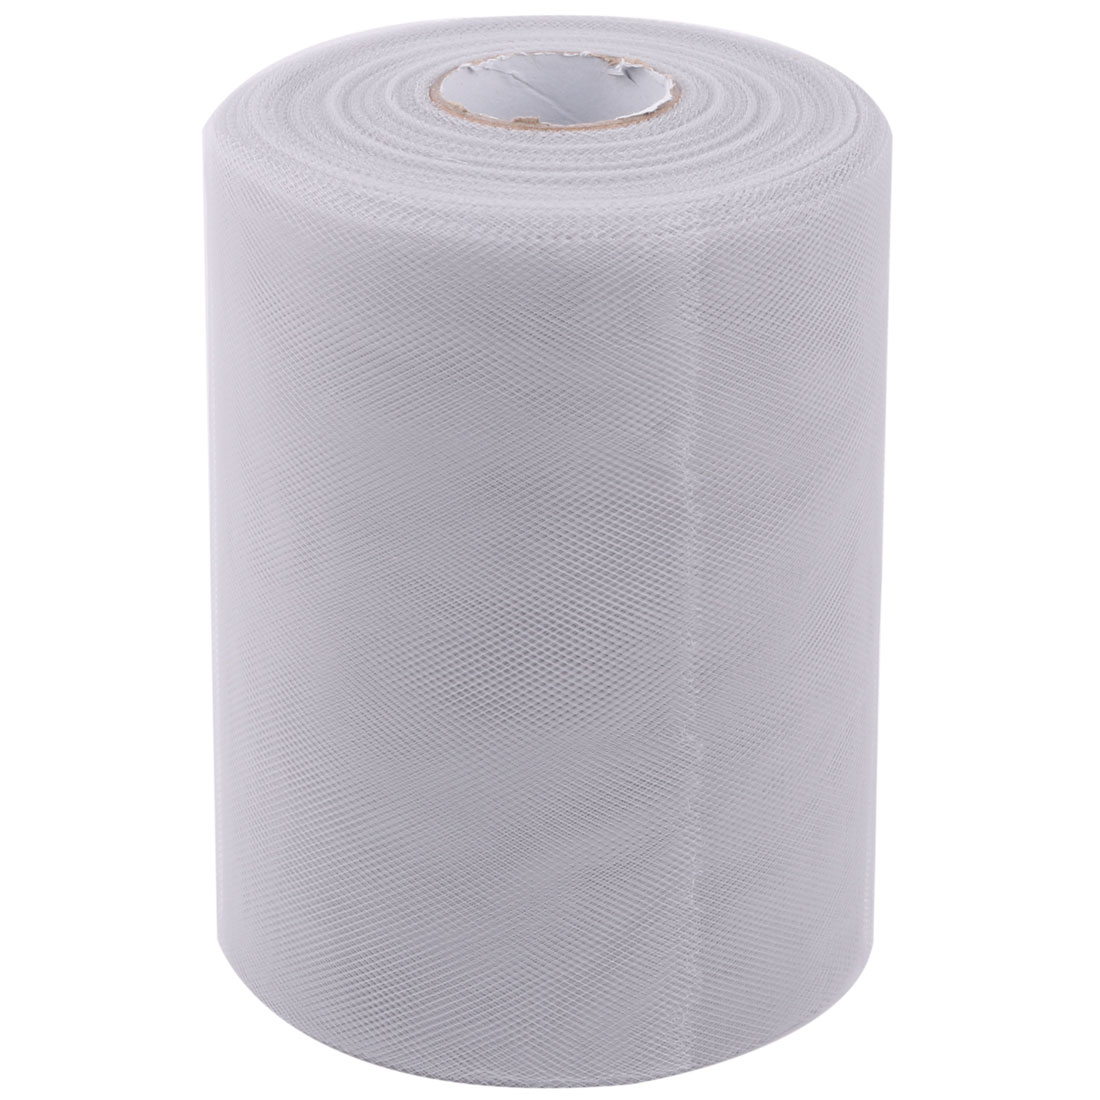 Party Gift DIY Dress Craft Decor Tulle Spool Roll Light Gray 6 Inch x 100 Yards